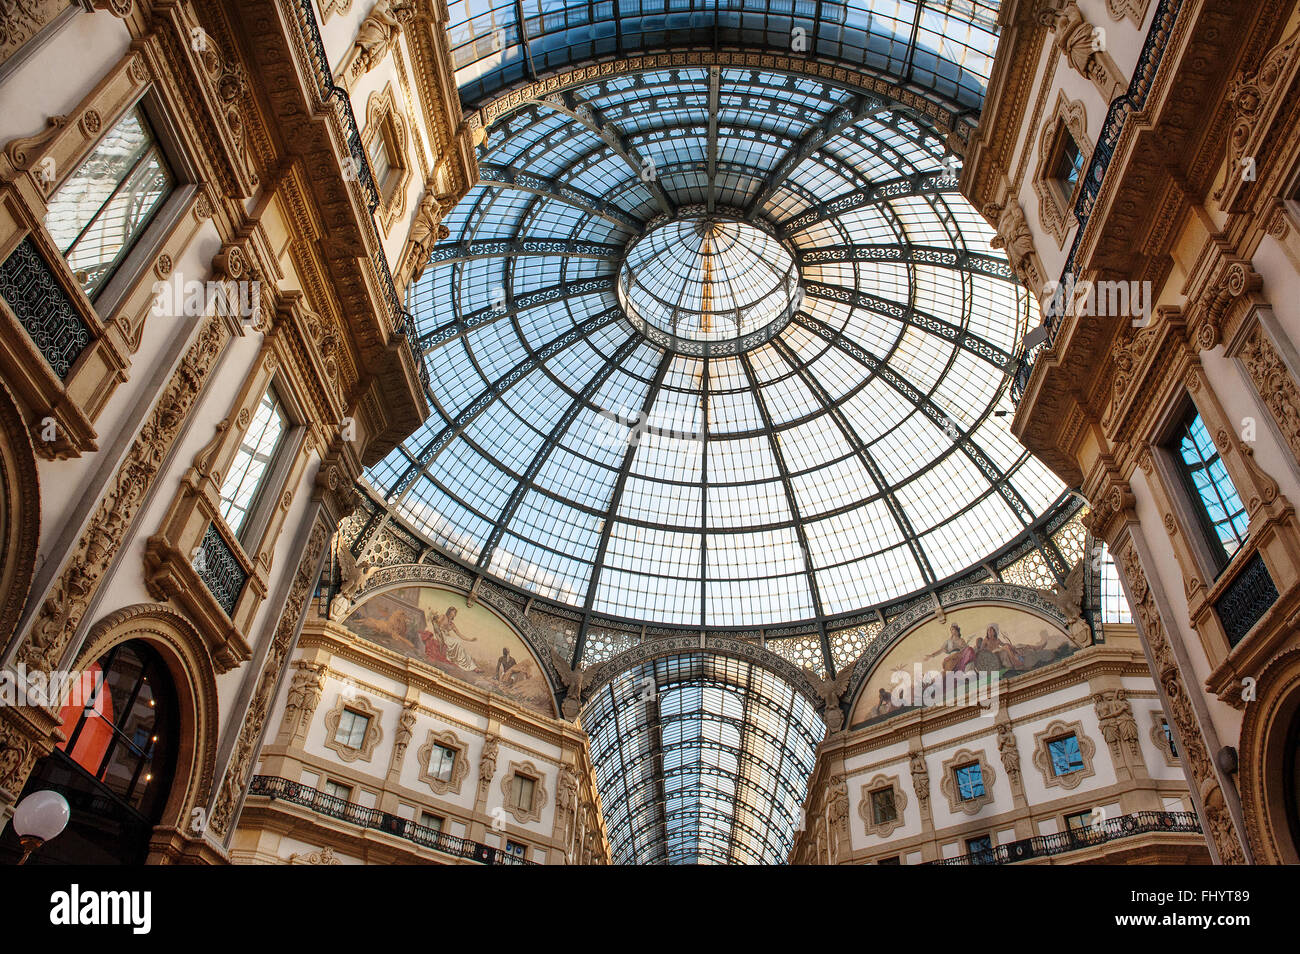 Low angle view toward circular domed ceiling and windows inside the Vittorio Emanuele Milan shopping mall interior - Stock Image